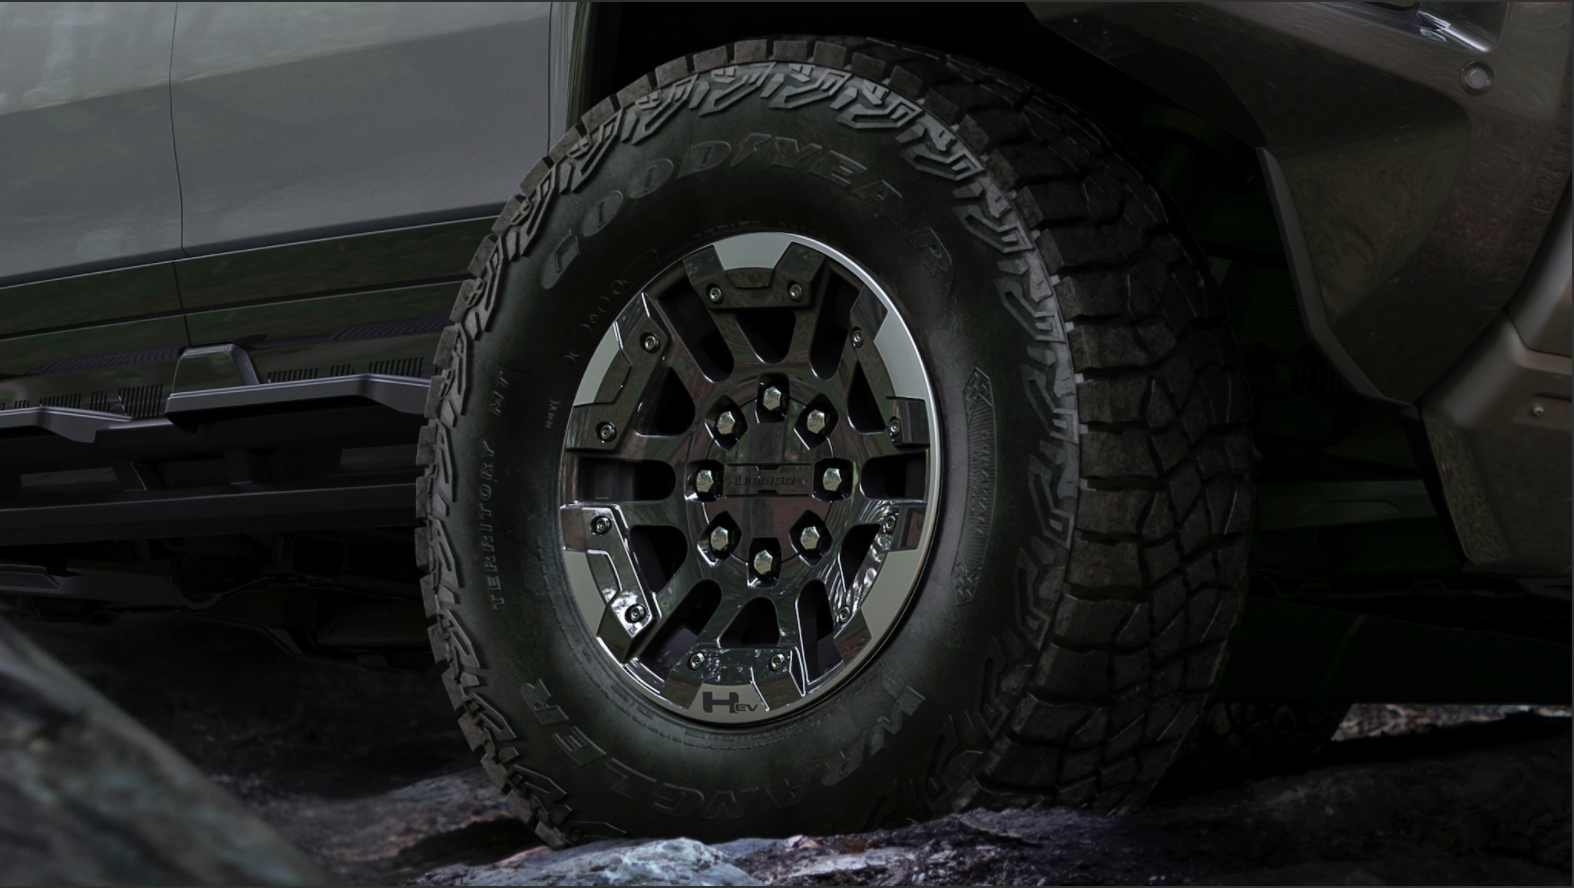 Picture of the New GMC tires that can go offroad